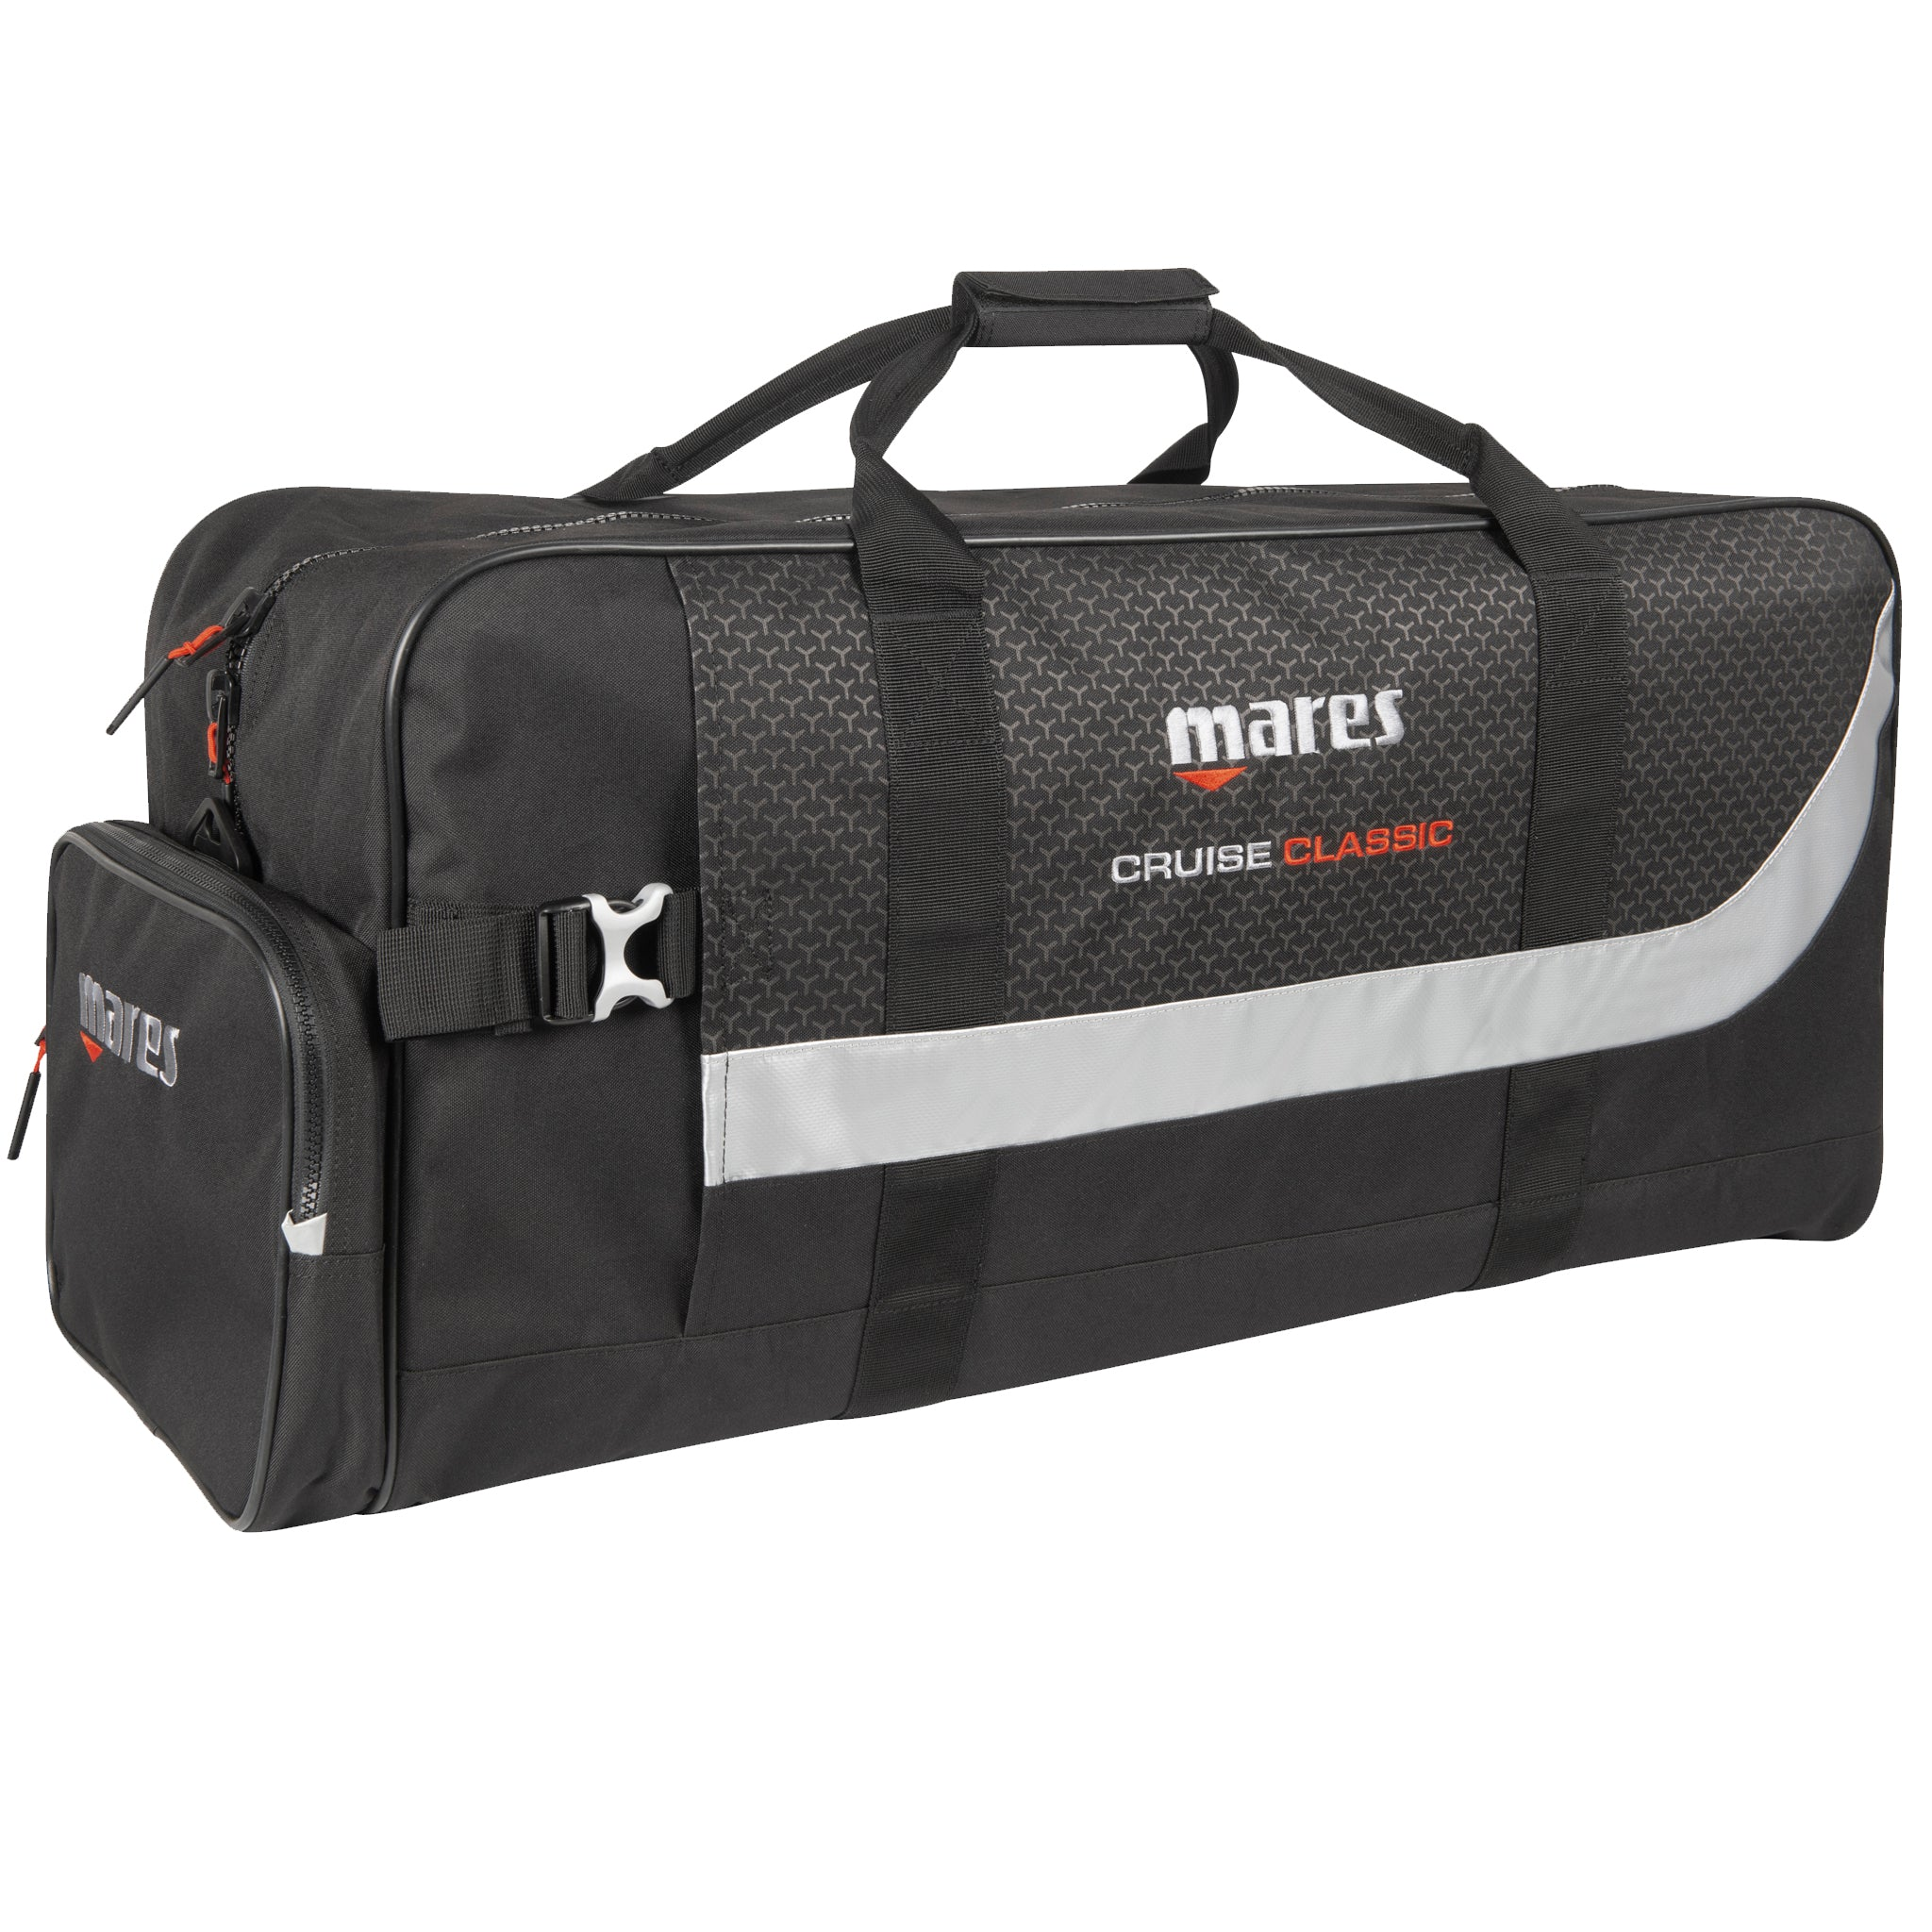 Scuba Gear Dive Bag Mares Cruise Roller Foldable Backpack